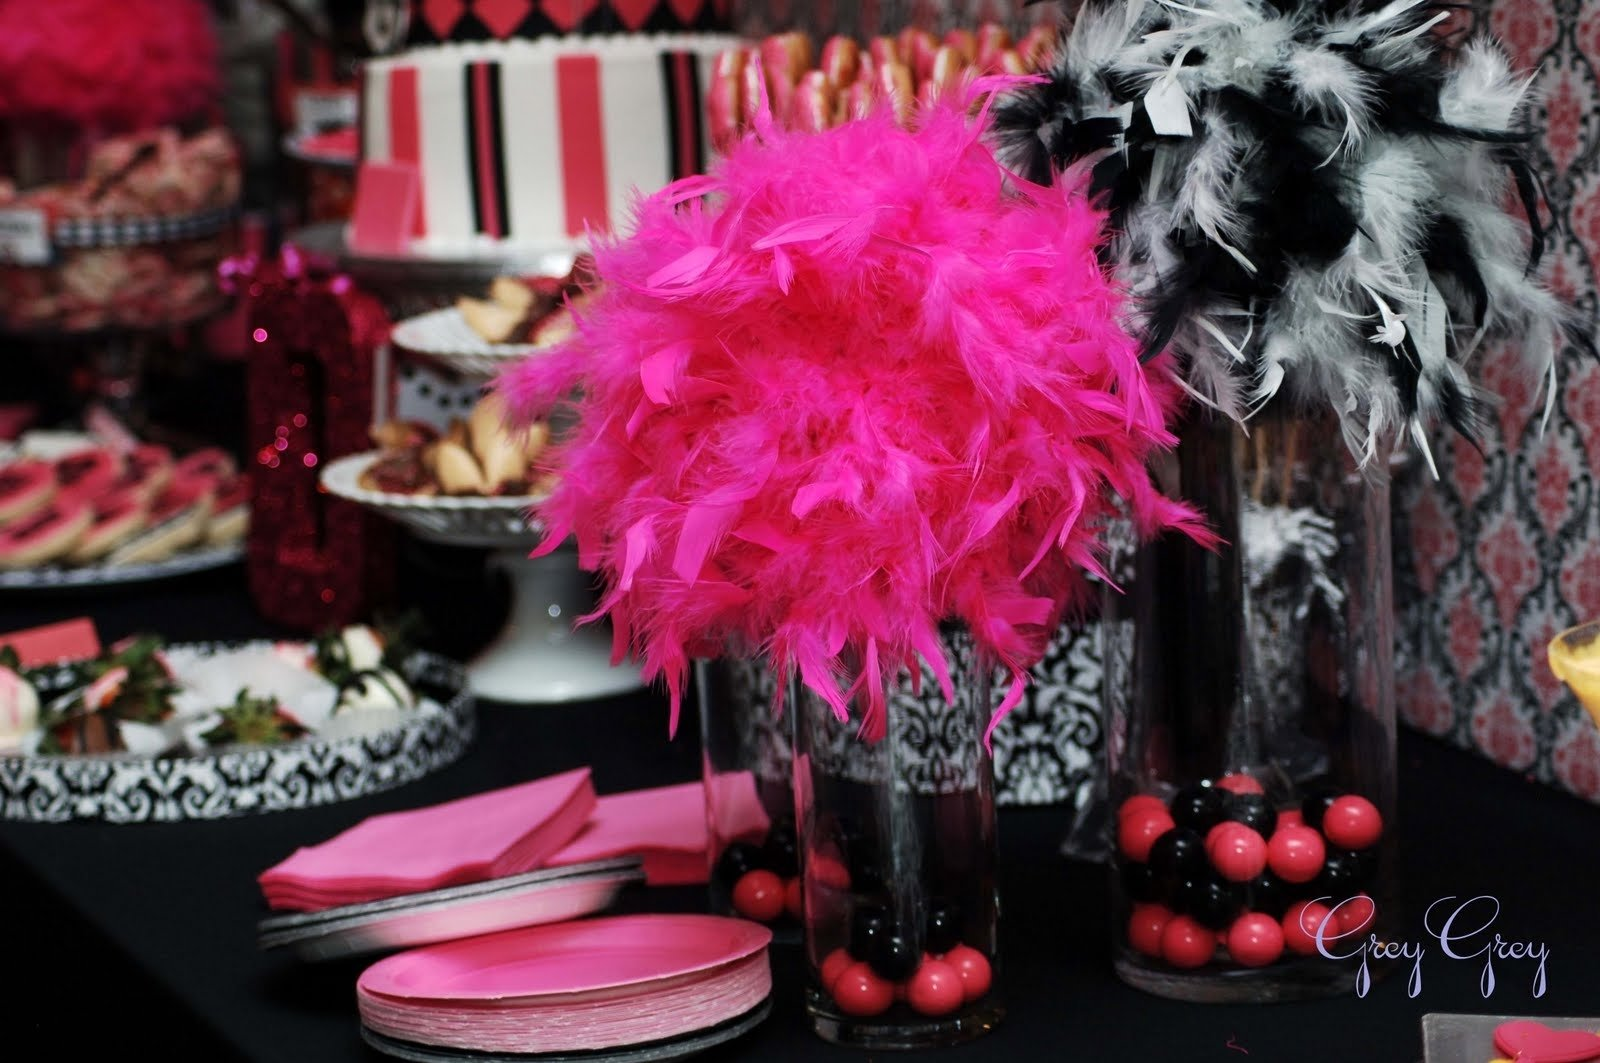 10 Famous Pink And Black Party Ideas pink and black party decorations 7 free hd wallpaper 2020